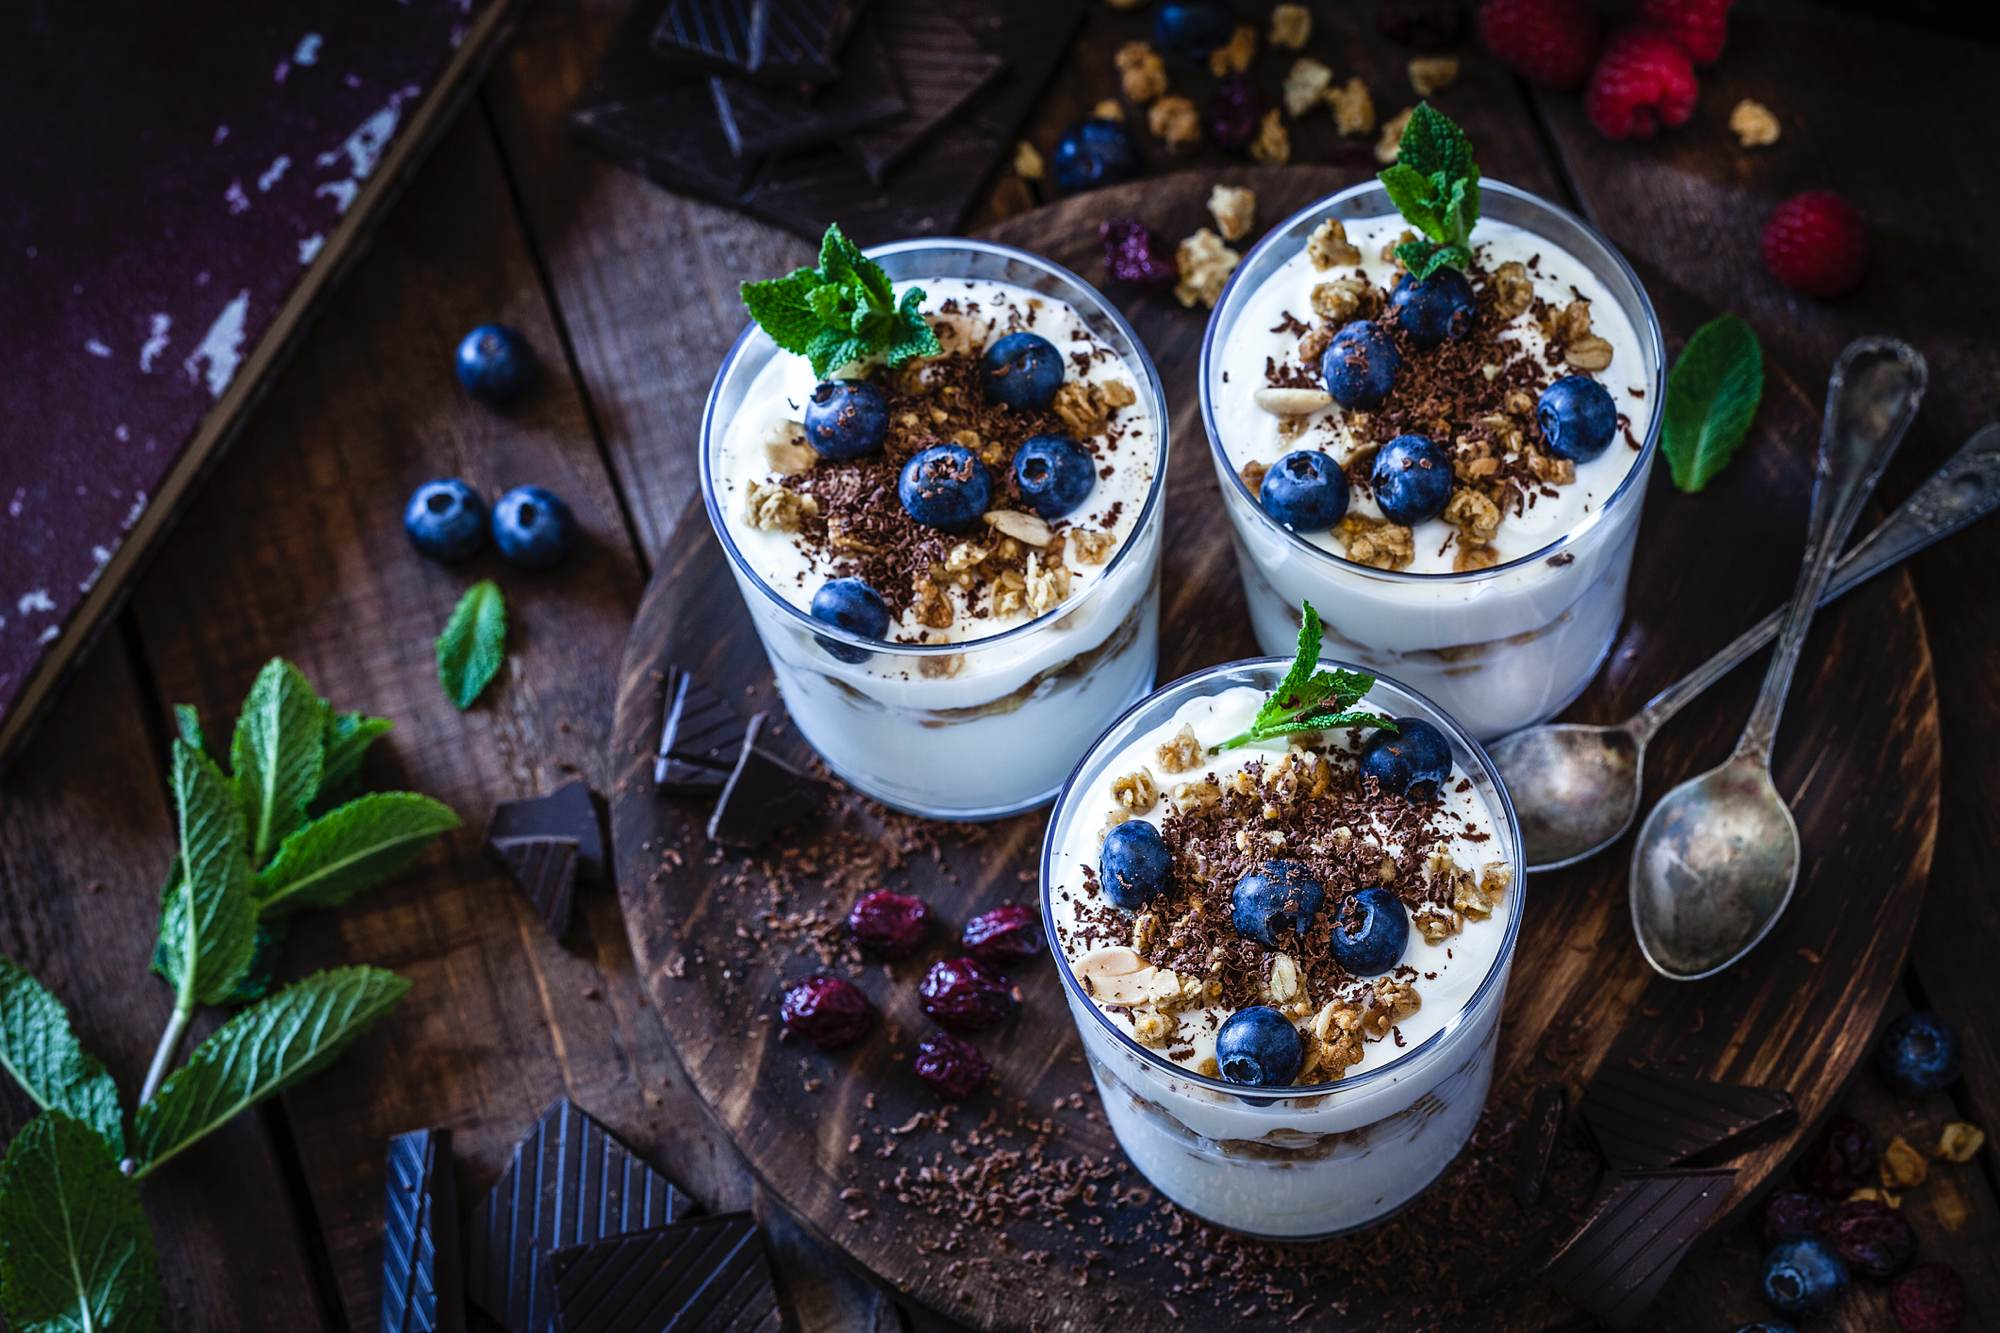 yogurt-with-granola-berry-fruits-and-chocolate